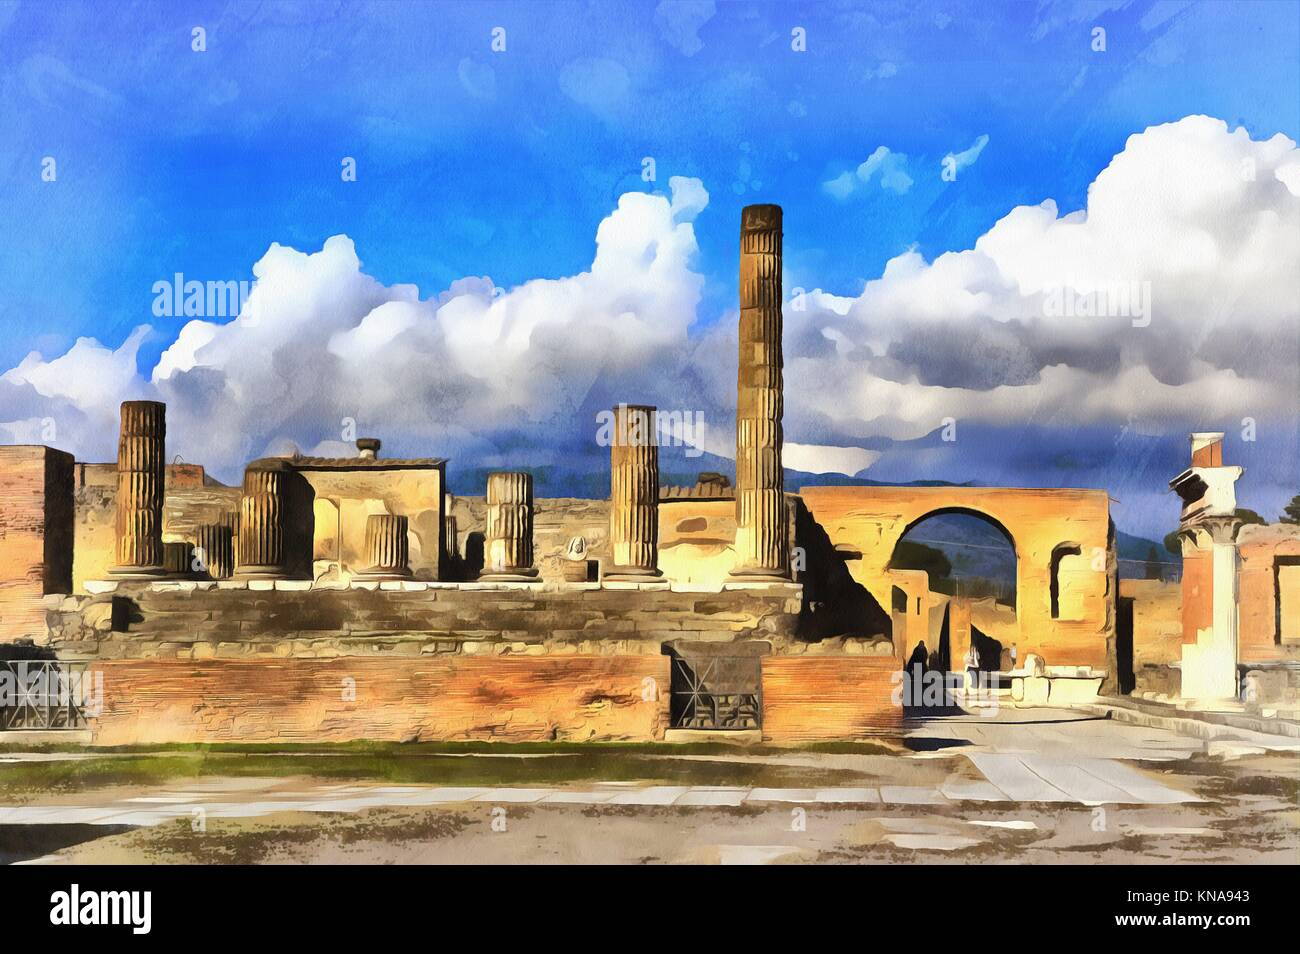 Colorful painting of Forum Pompeii Campania Italy. - Stock Image